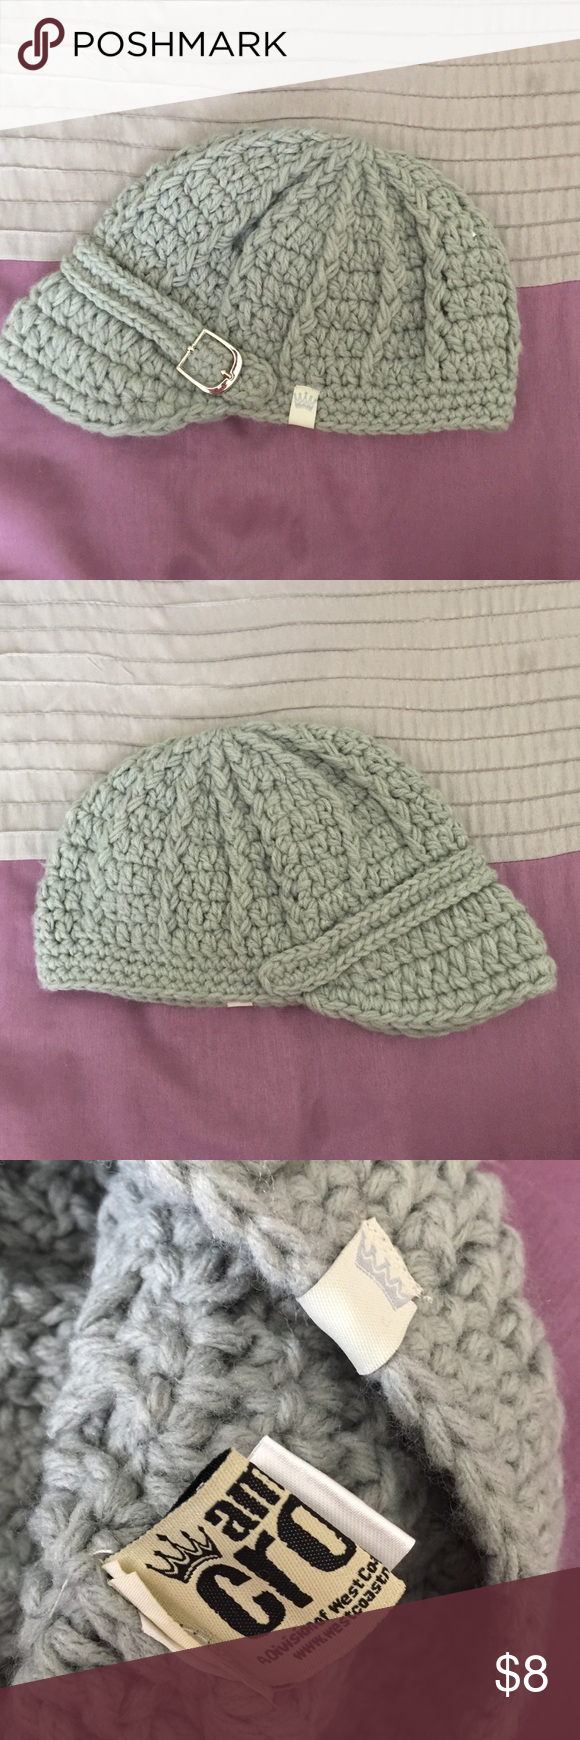 American Crown Crochet Hat Super trendy light grey crochet hat. Has silver buckler on faux strap. One size. So cute! American Crown Accessories Hats #crownscrocheted